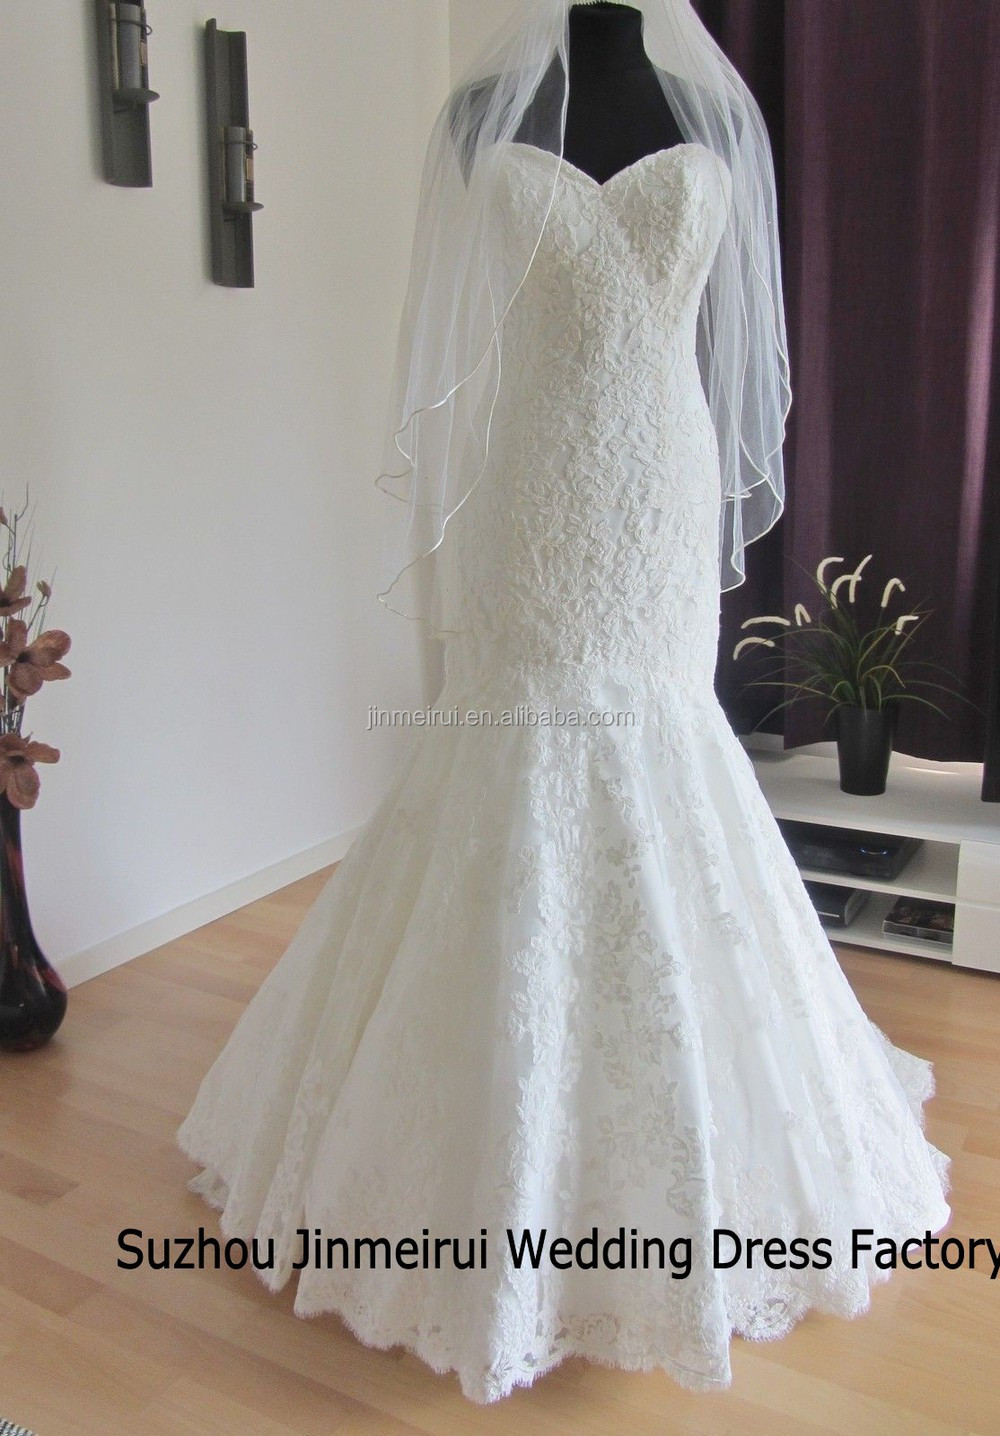 Real Sample Wedding Dress Graceful Mermaid Lace Wedding Dresses 2016 Zippered Back Buttons Cheap Wedding Gown